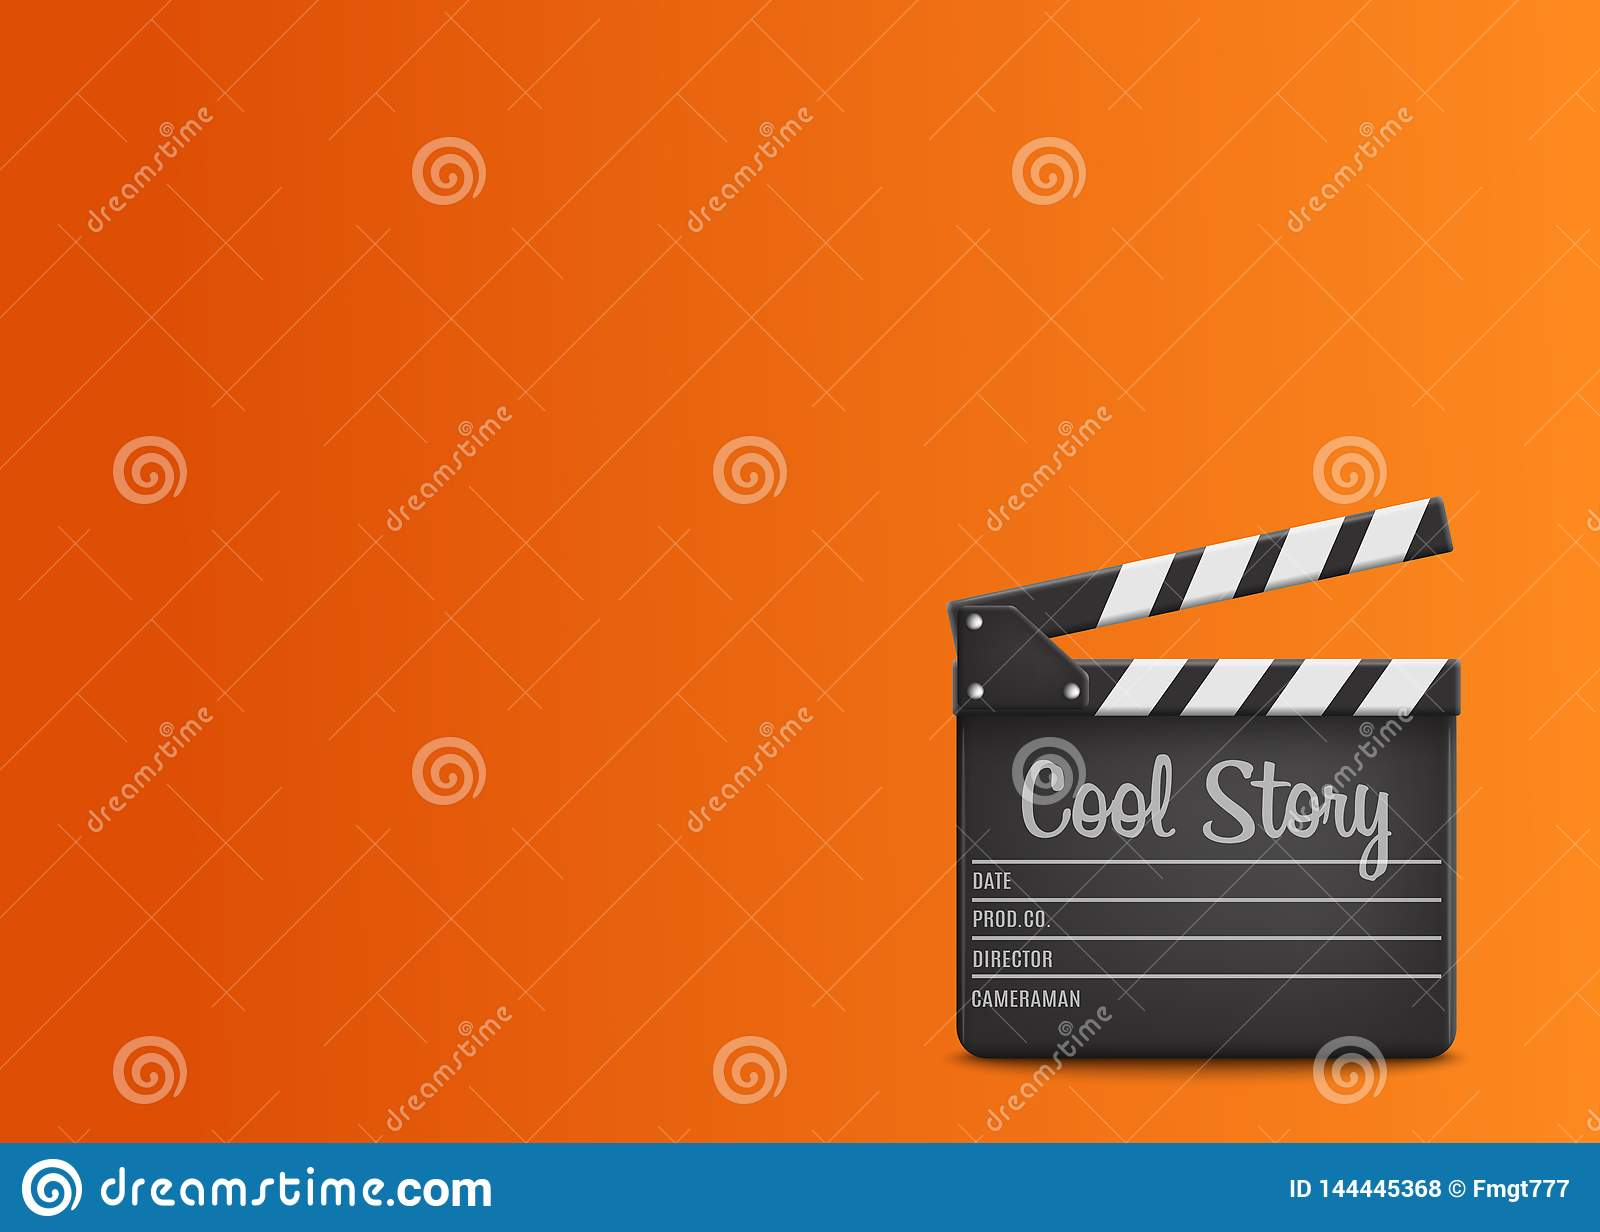 Clapperboard with text Cool Story on orange background.Vector